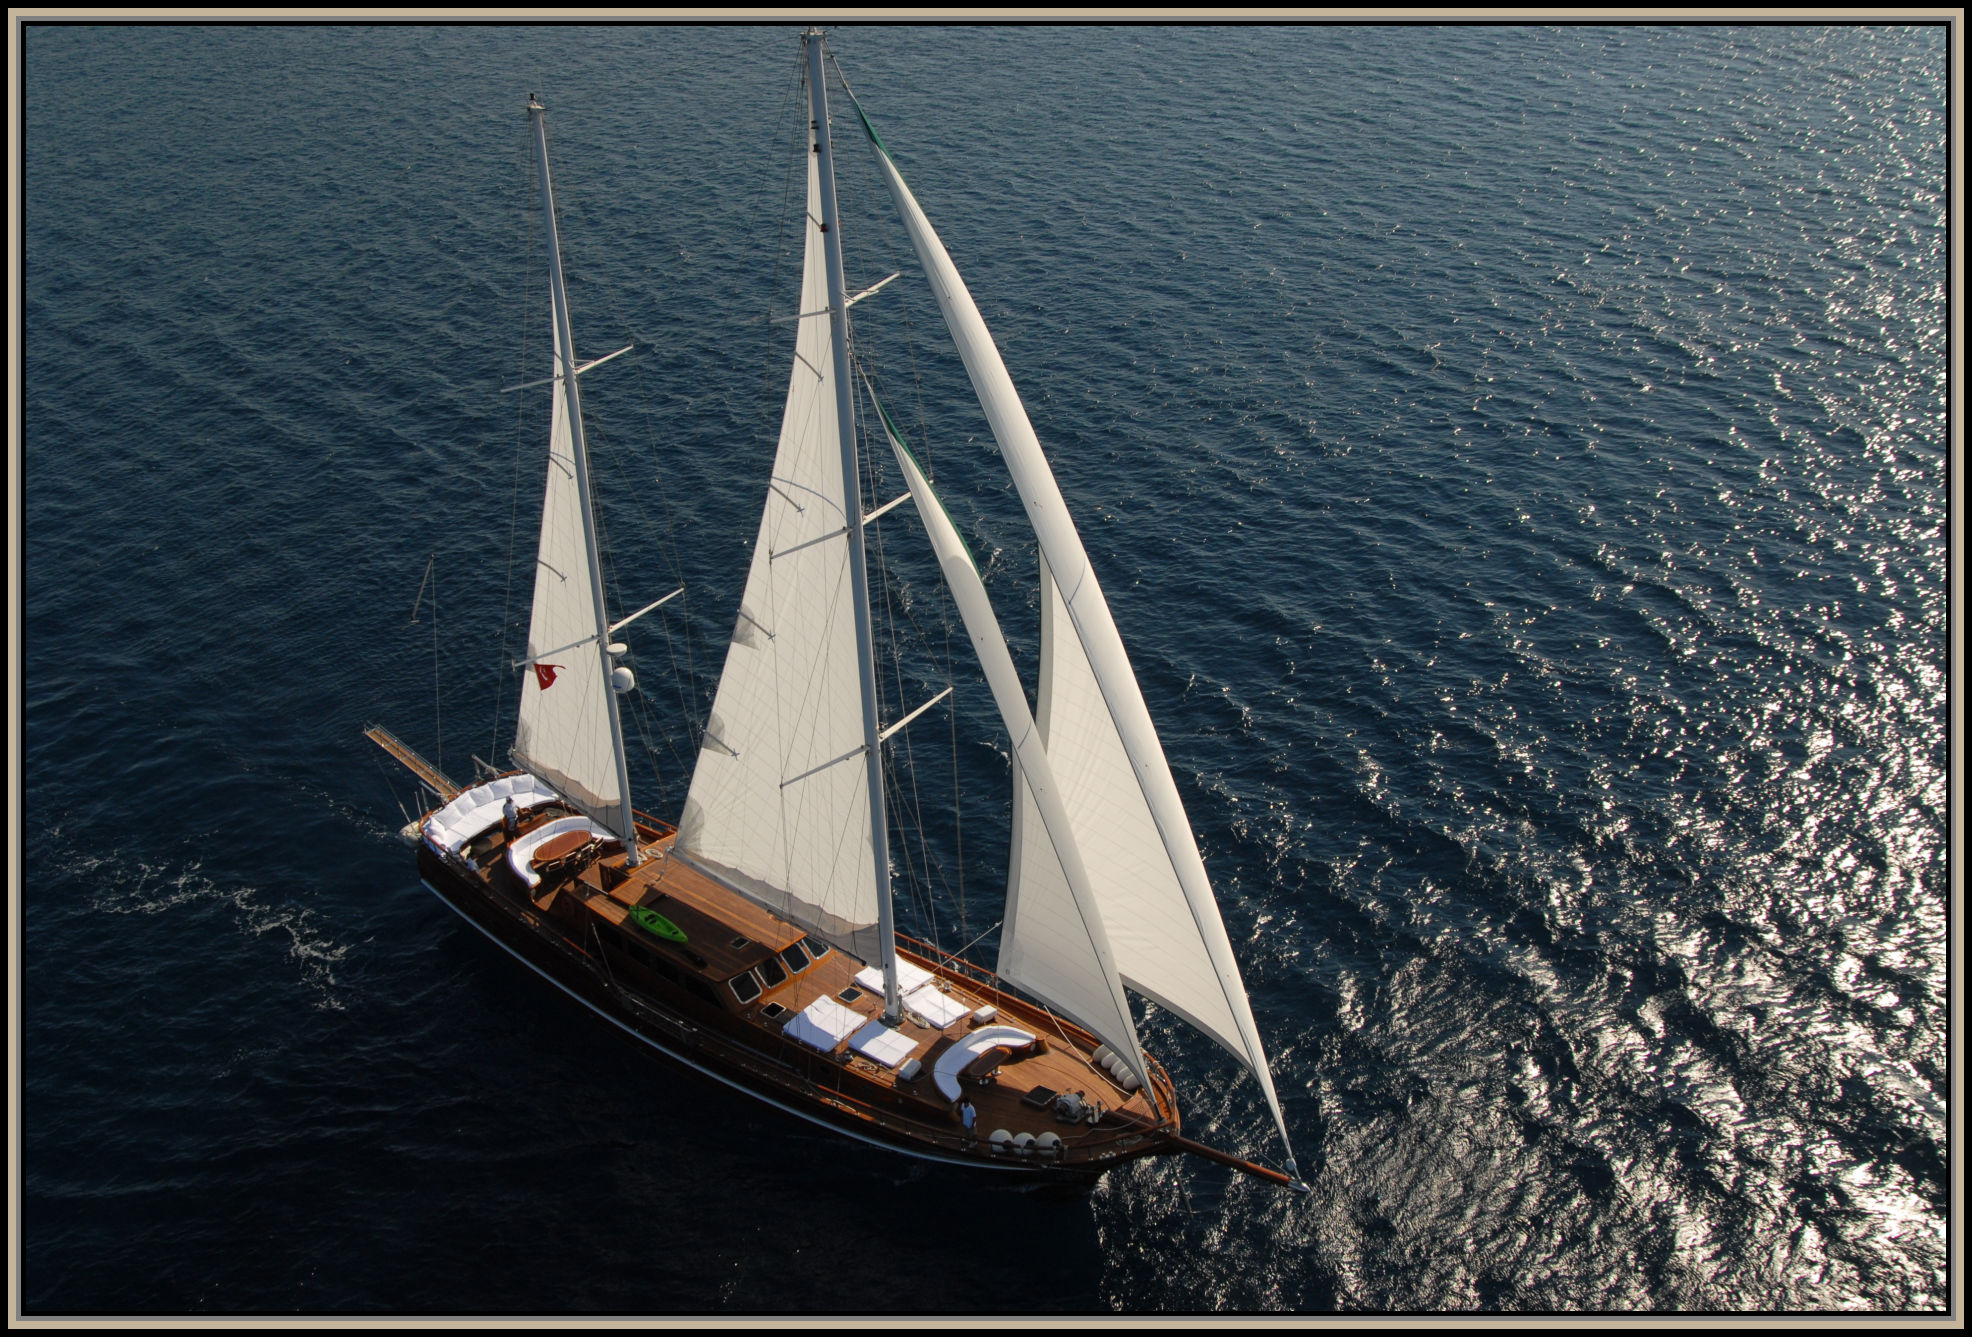 Lady Christa 32 m / model 2007 & 5 double cabin